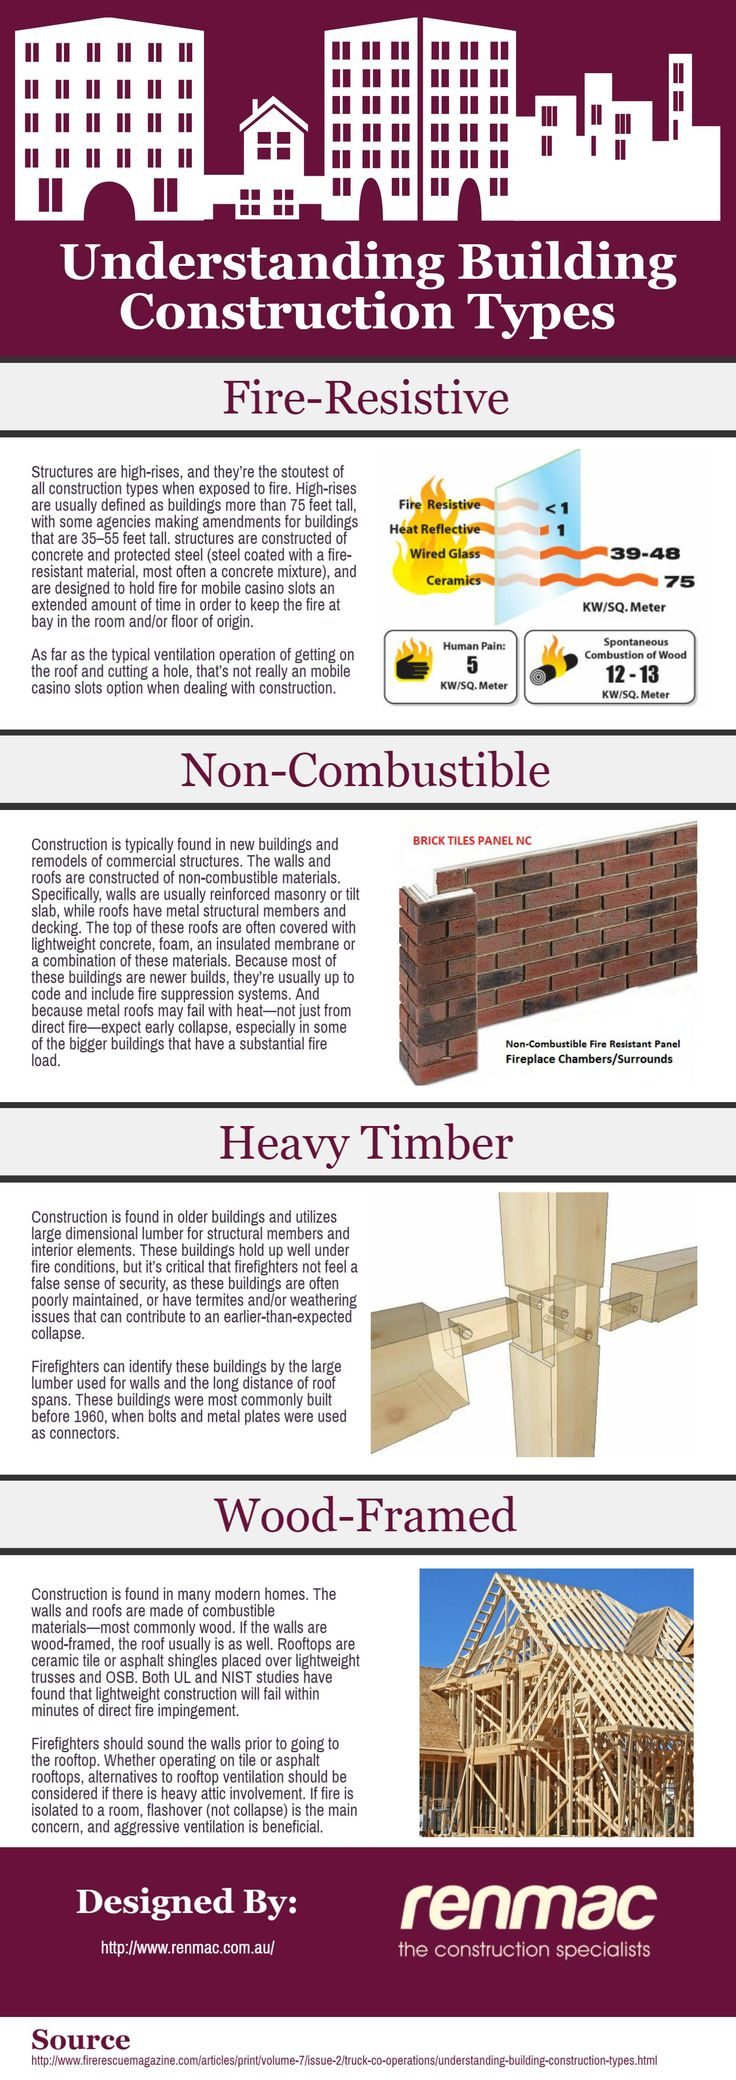 This infographic is designed by Renmac. Determining a building's construction type is dependent on quite a number of different factors and requires a keen eye for detail. This infographic describes the different types of construction systems commonly found today.